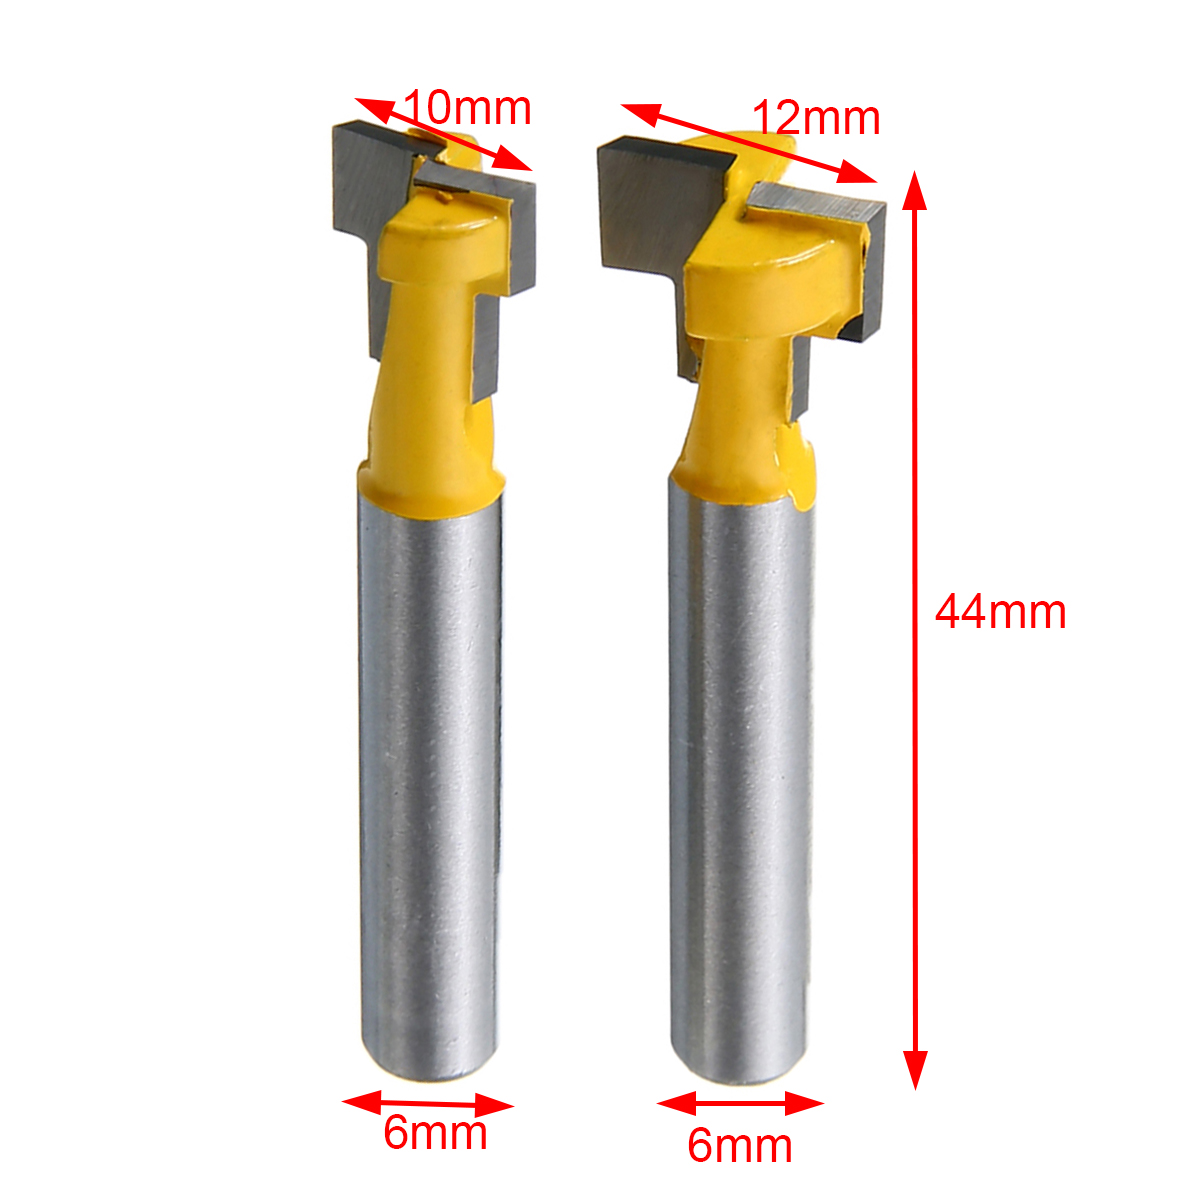 2pcs 3/8 & 1/2 T-Slot Router Bits 1/4 Shank Woodworking Cutter with High Toughness Mayitr high grade carbide alloy 1 2 shank 2 1 4 dia bottom cleaning router bit woodworking milling cutter for mdf wood 55mm mayitr